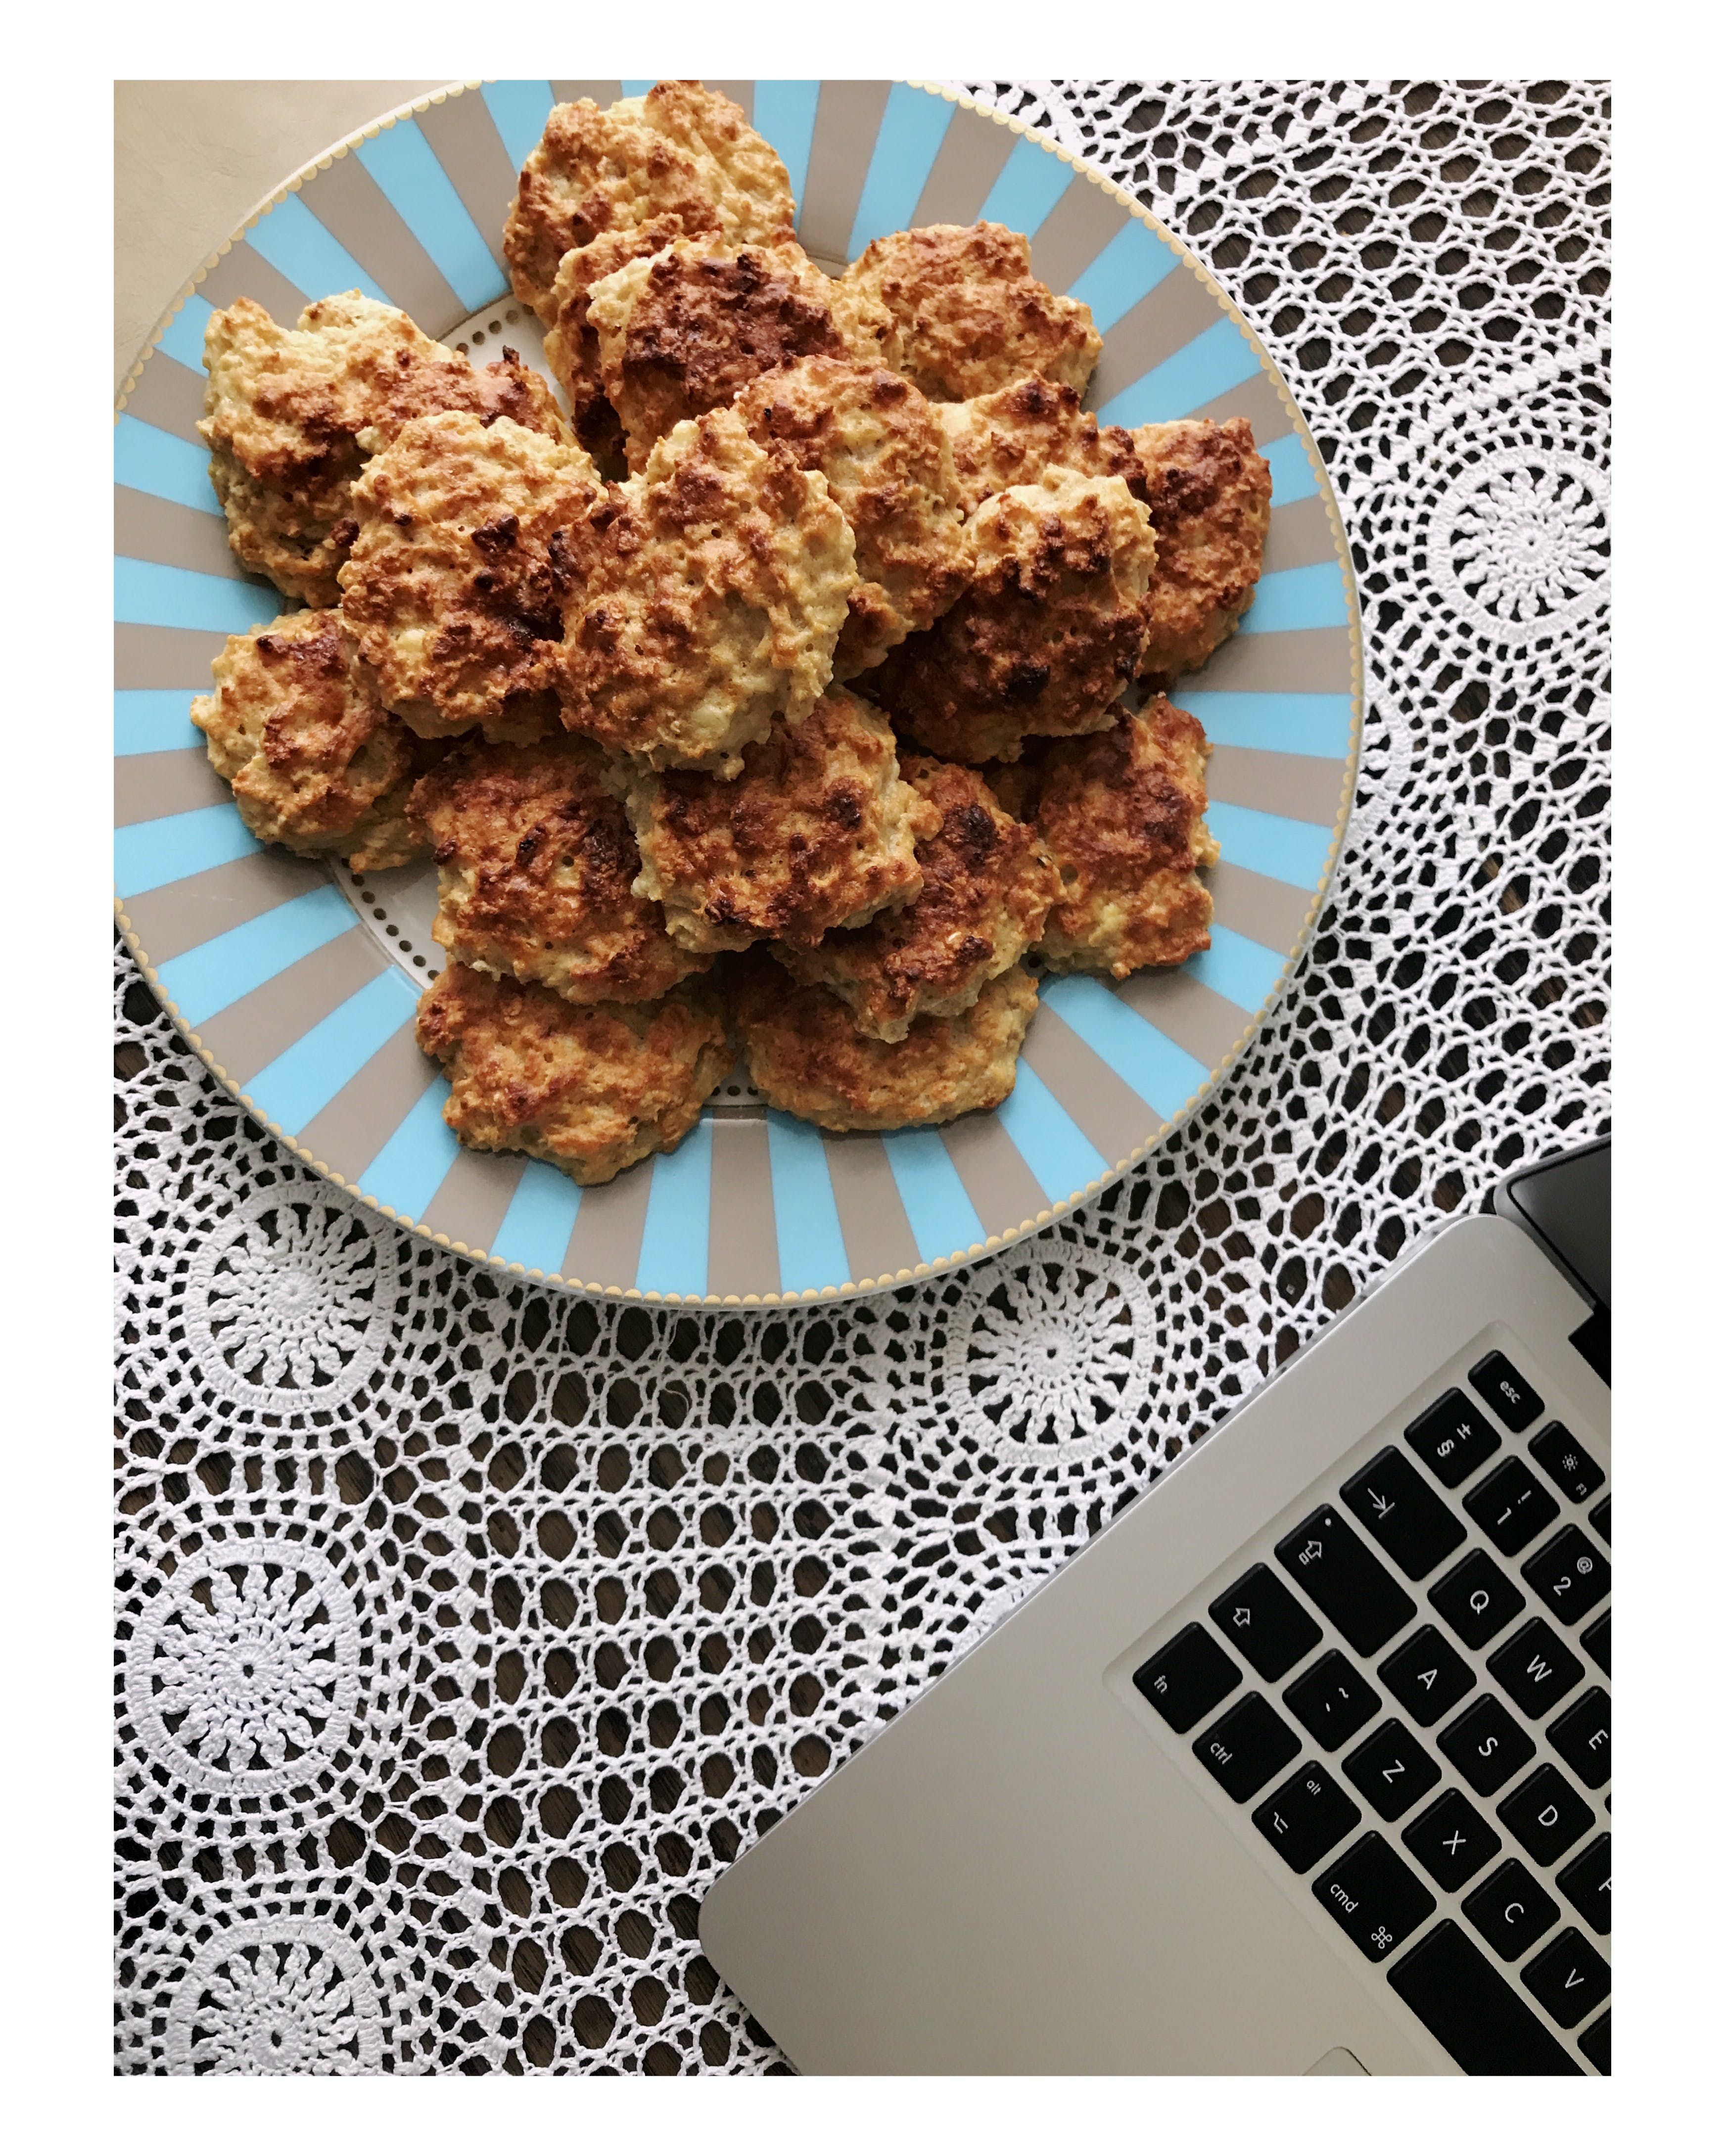 Plate of Nuggets Near Laptop